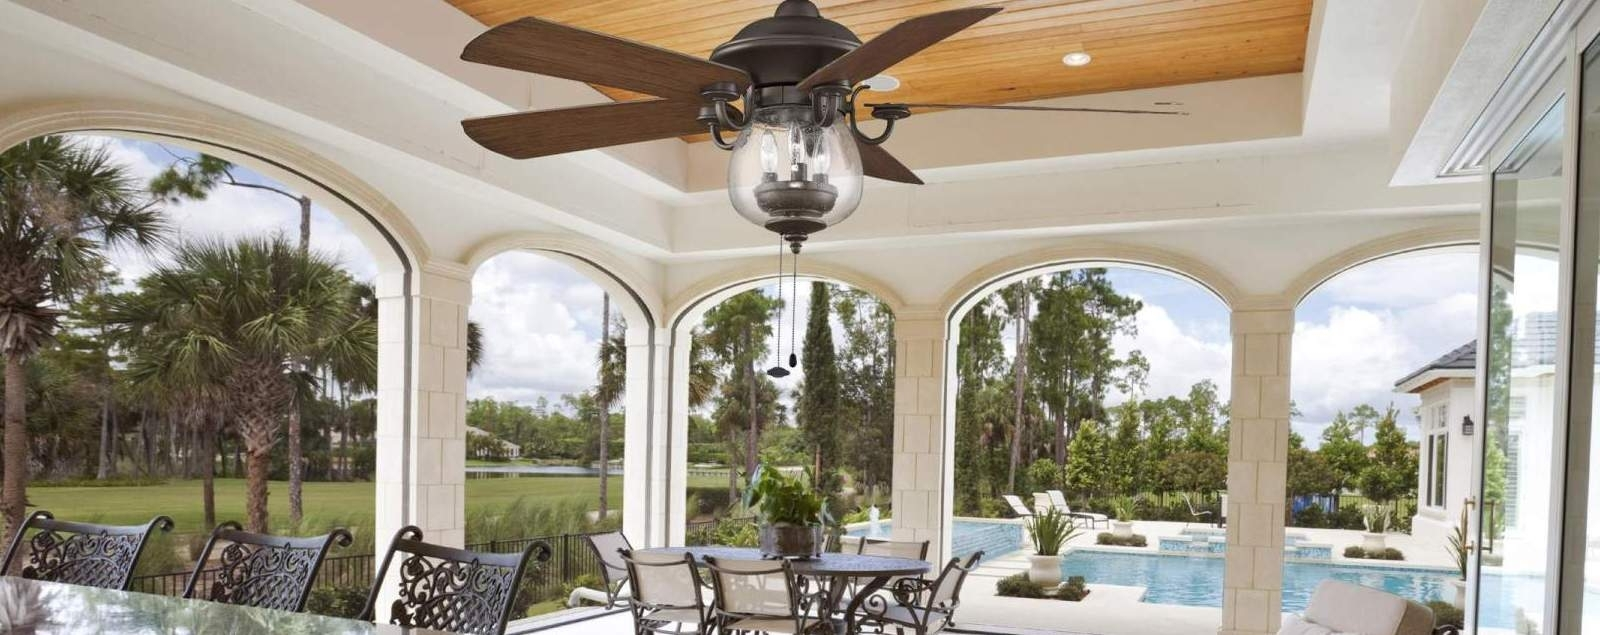 2019 Outdoor Ceiling Fans For High Wind Areas For Outdoor Ceiling Fans – Shop Wet, Dry, And Damp Rated Outdoor Fans (Gallery 1 of 20)